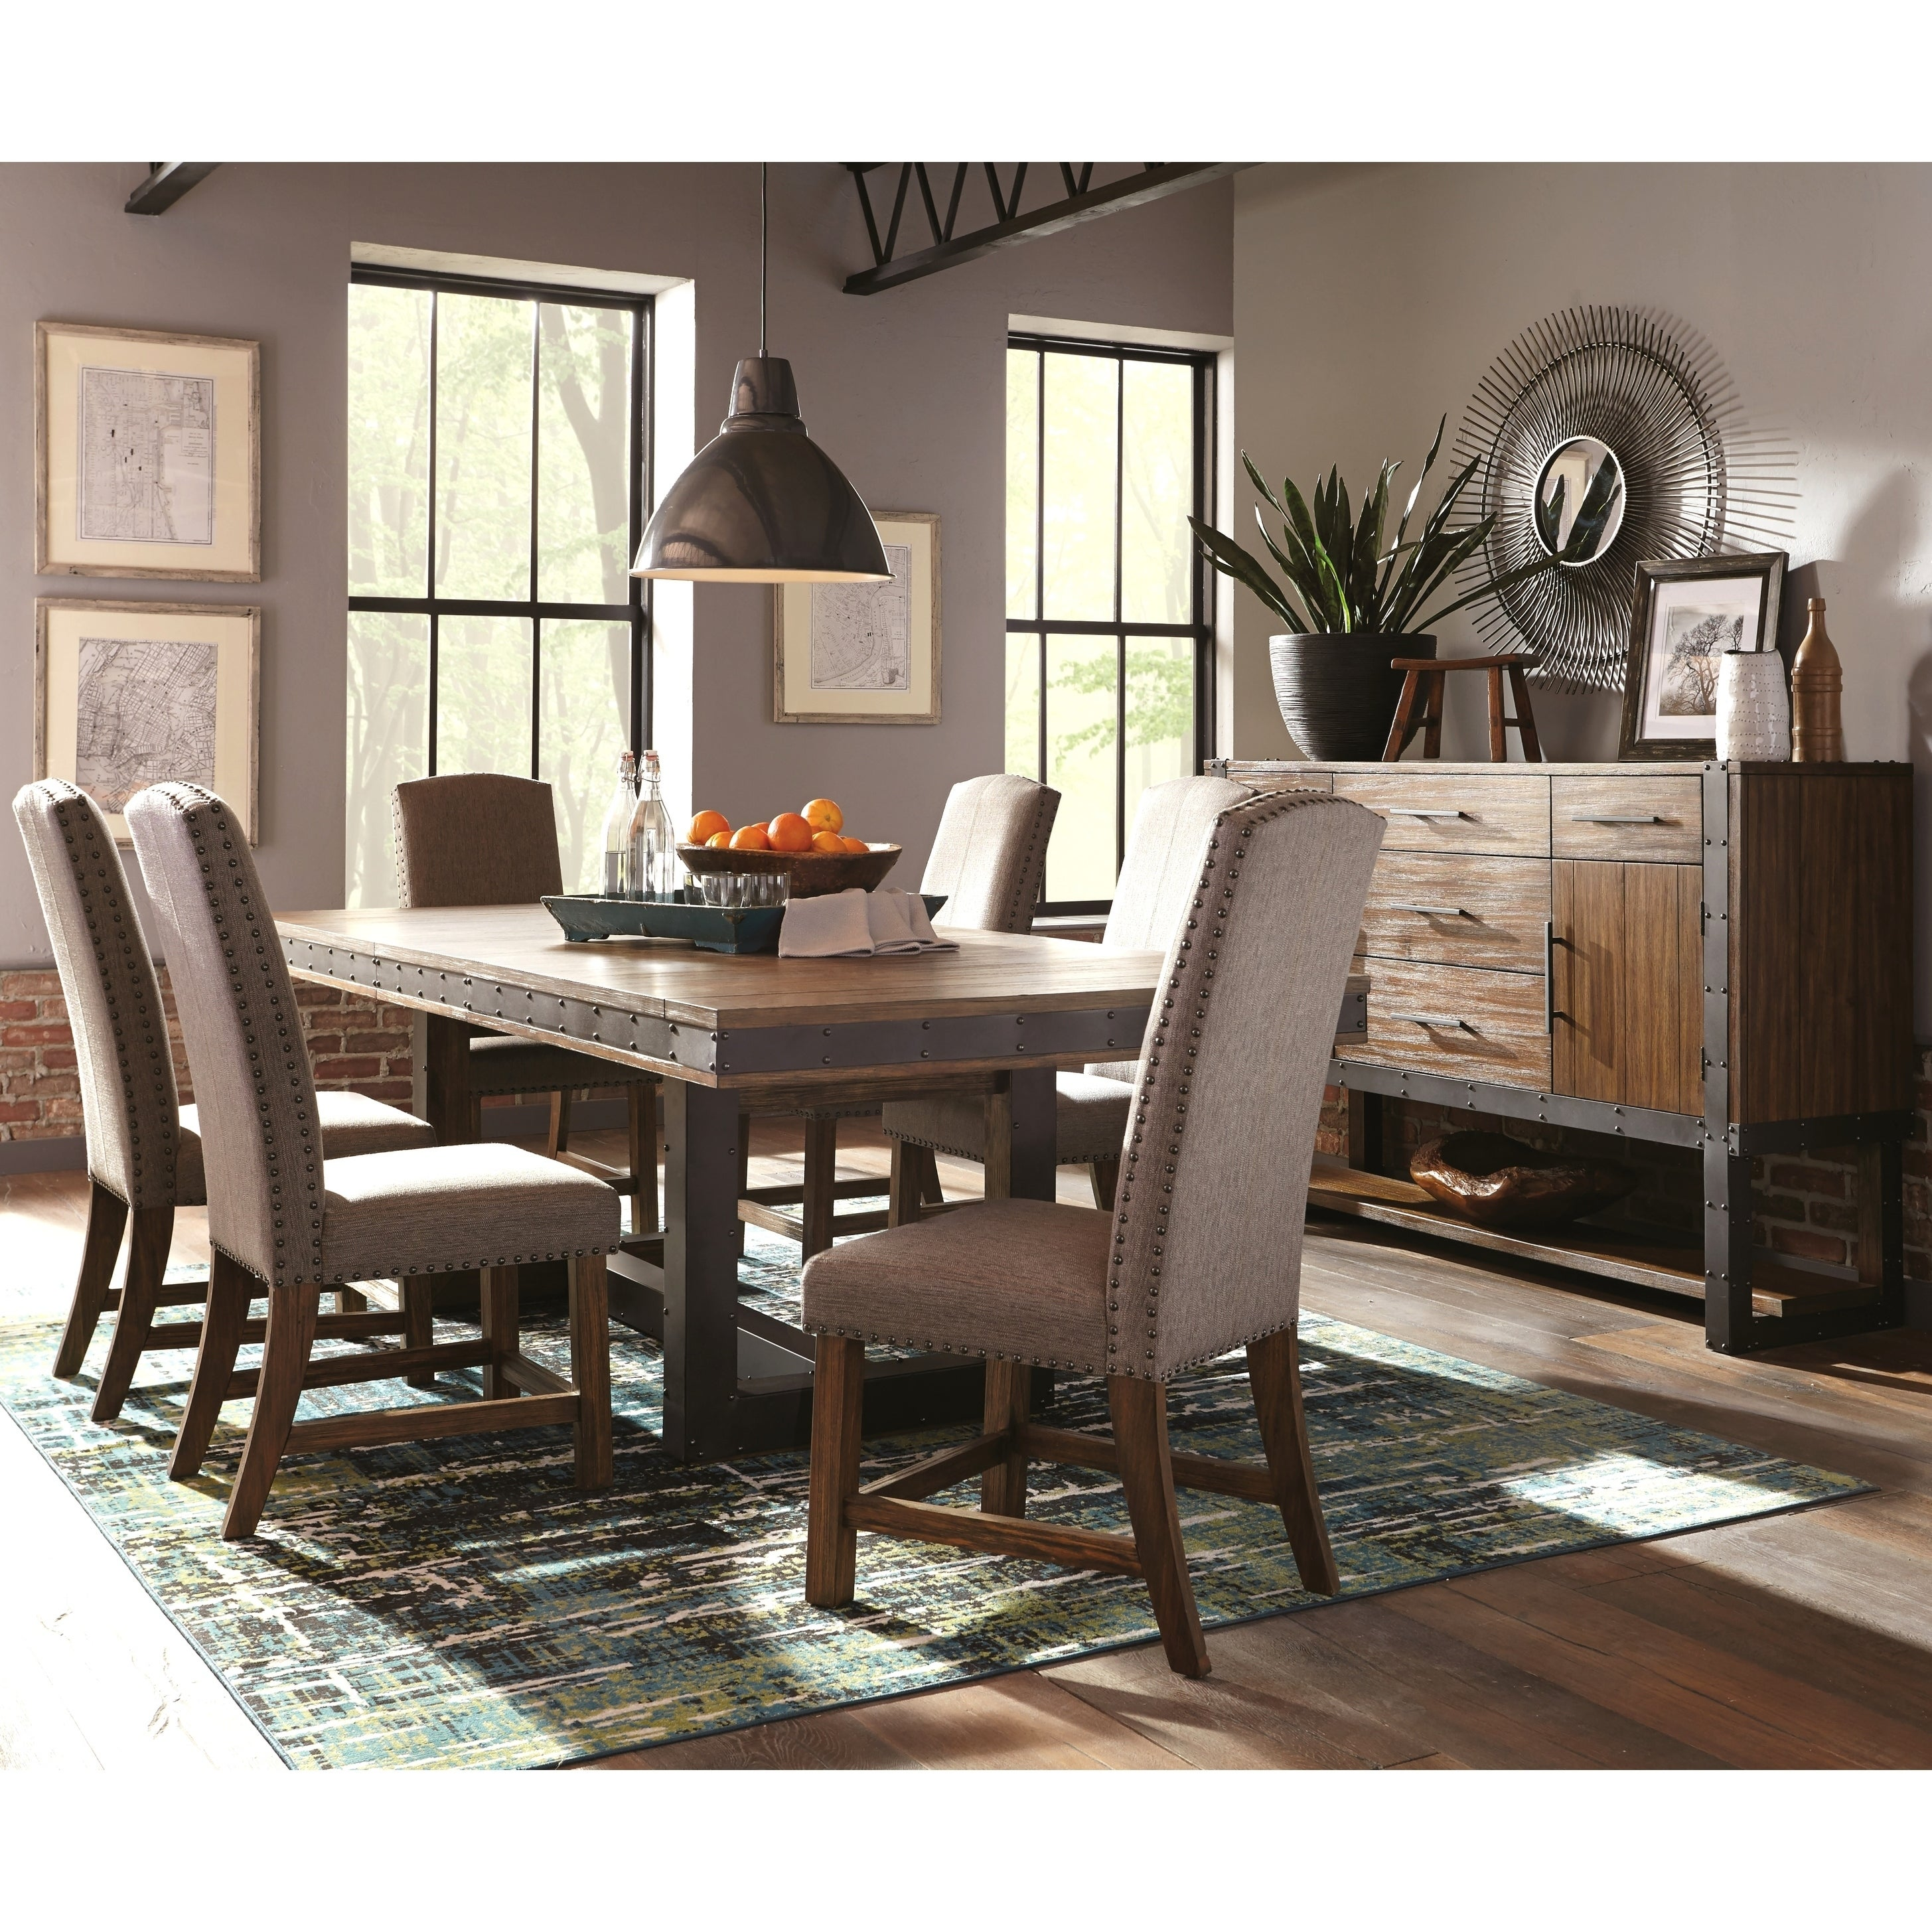 Industrial Rustic Design Metal and Wood Dining Set with Matching Storag  Server